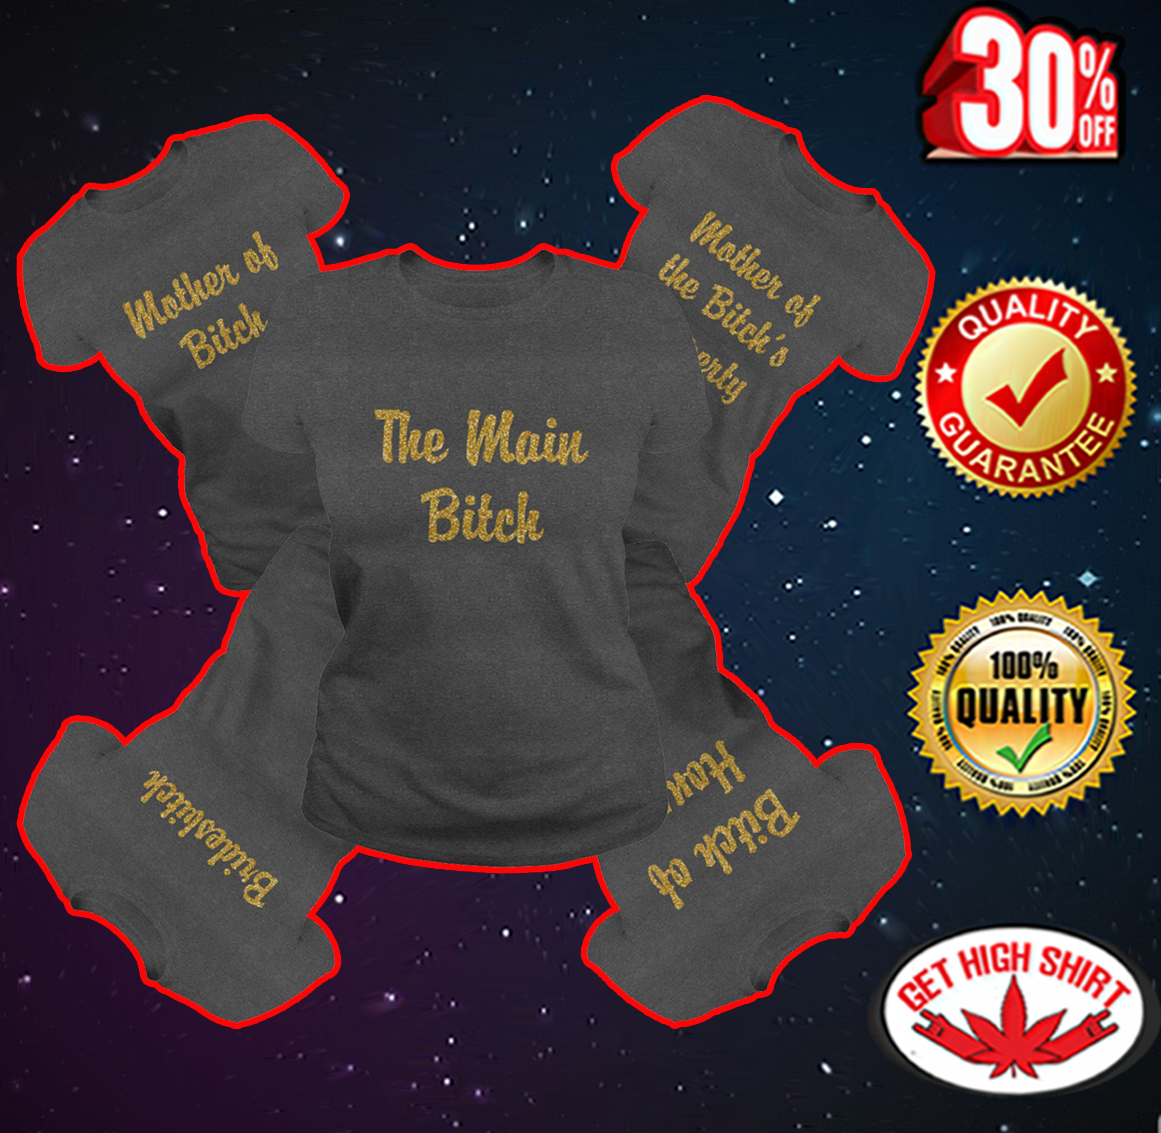 The main bitch - Bridesbitch - Bitch of Honor - Mother of Bitch - Mother of the Bitch's Property darkgrey shirt